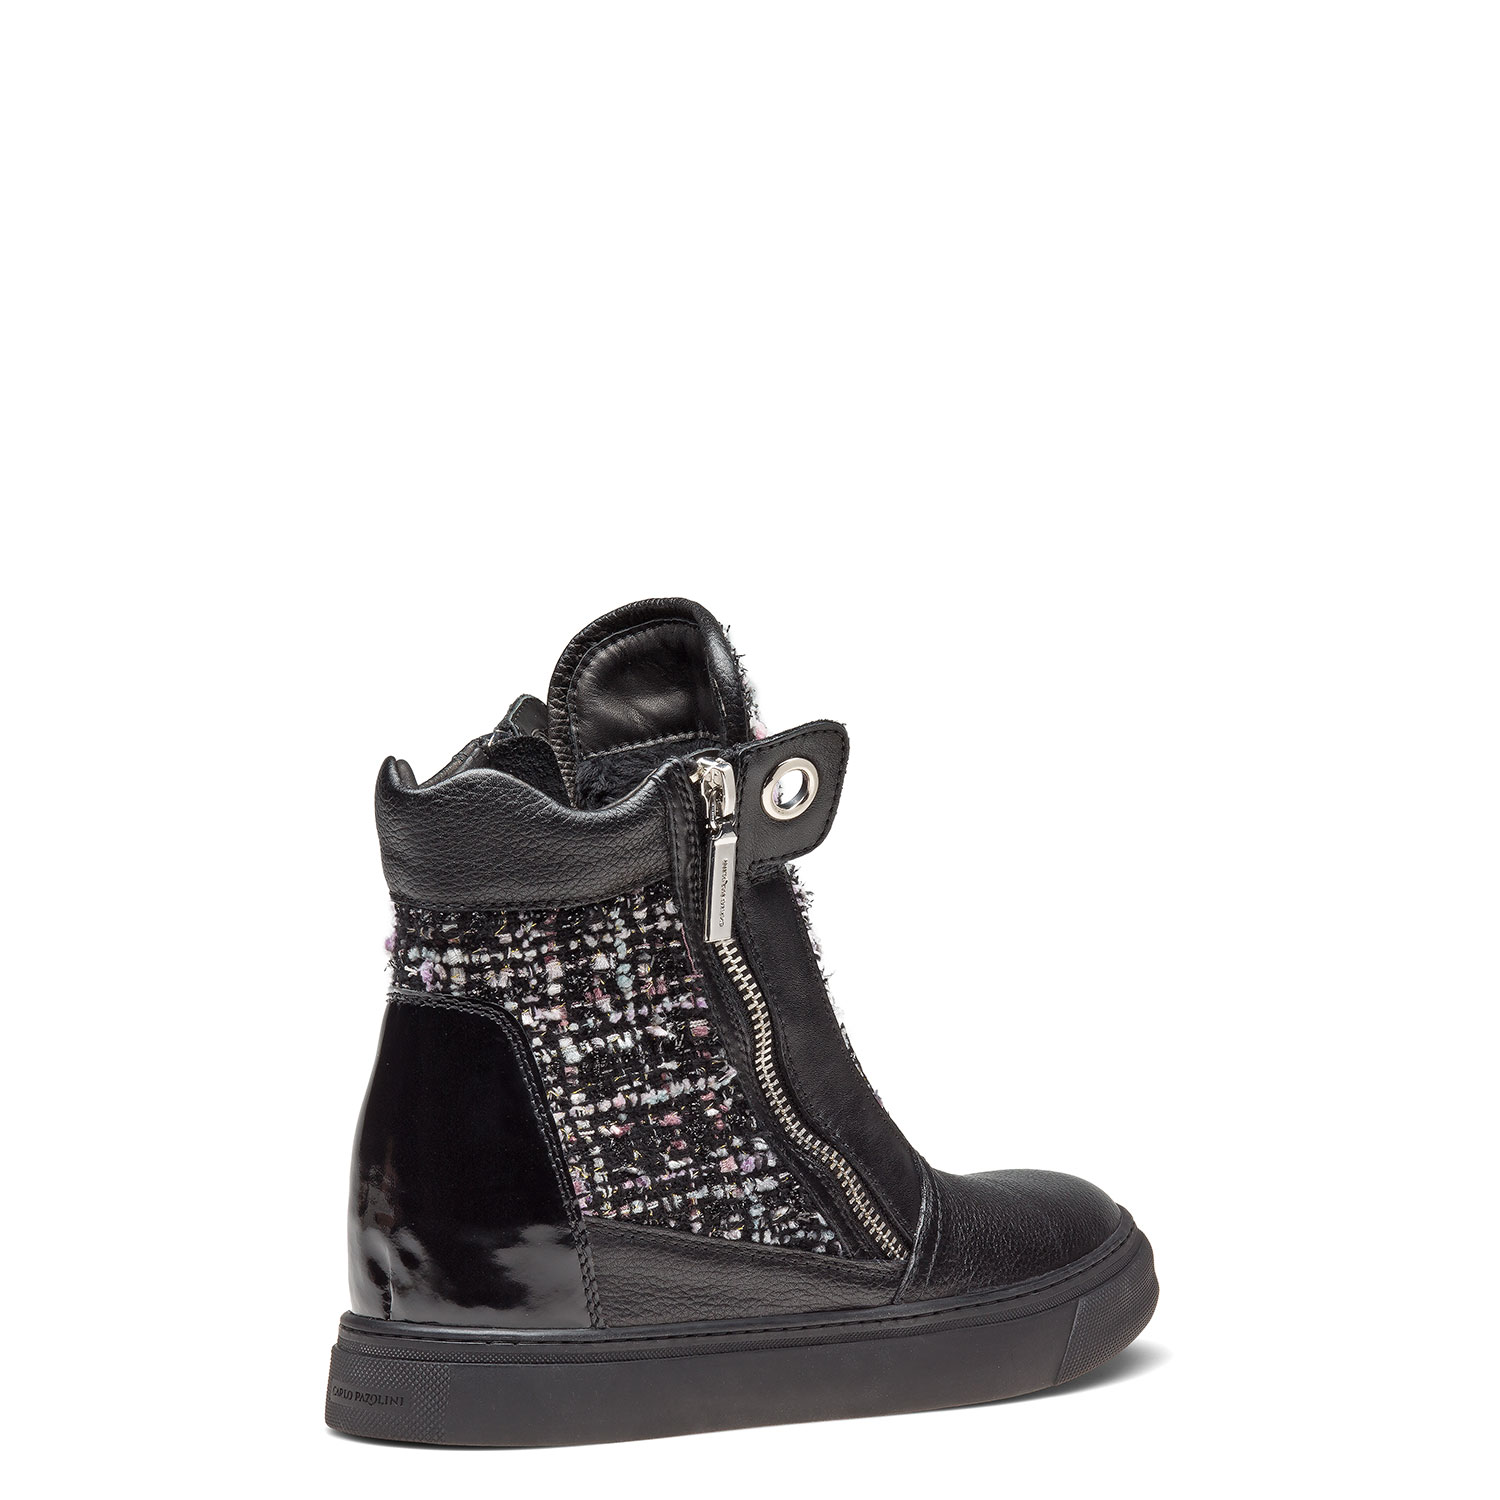 Women's cold weather ankle boots CARLO PAZOLINI JH-ZAF8-20